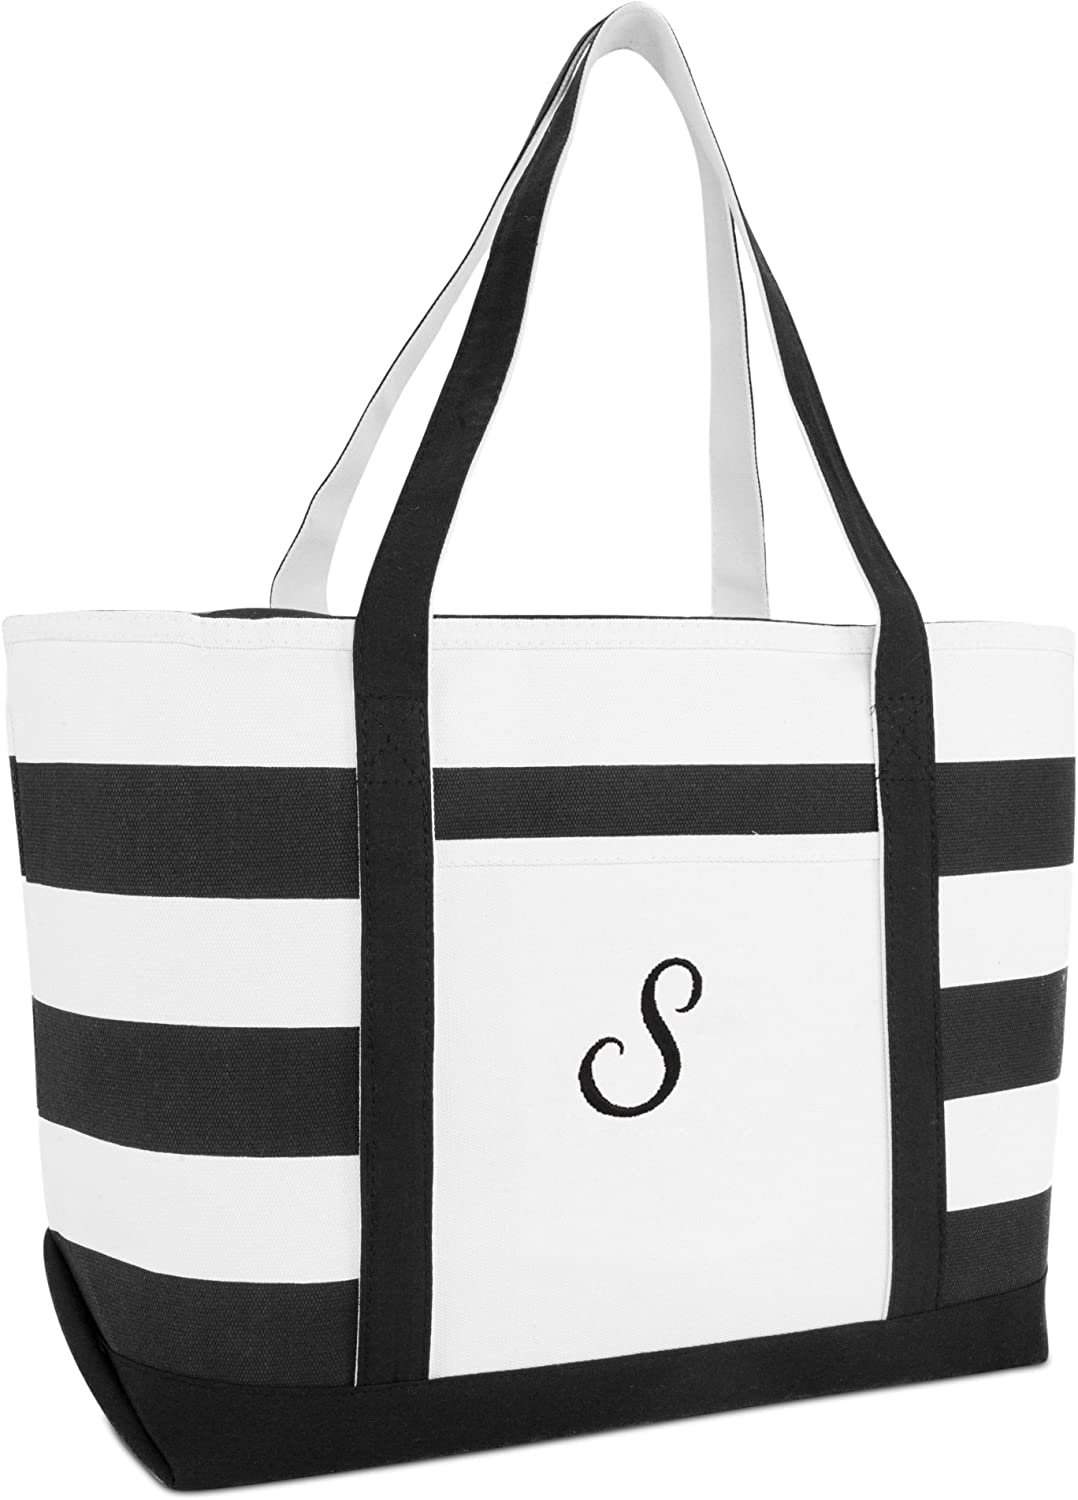 DALIX Striped Beach Ranking TOP18 Bag Tote Canvas Black Personalized Ball Bags Max 44% OFF